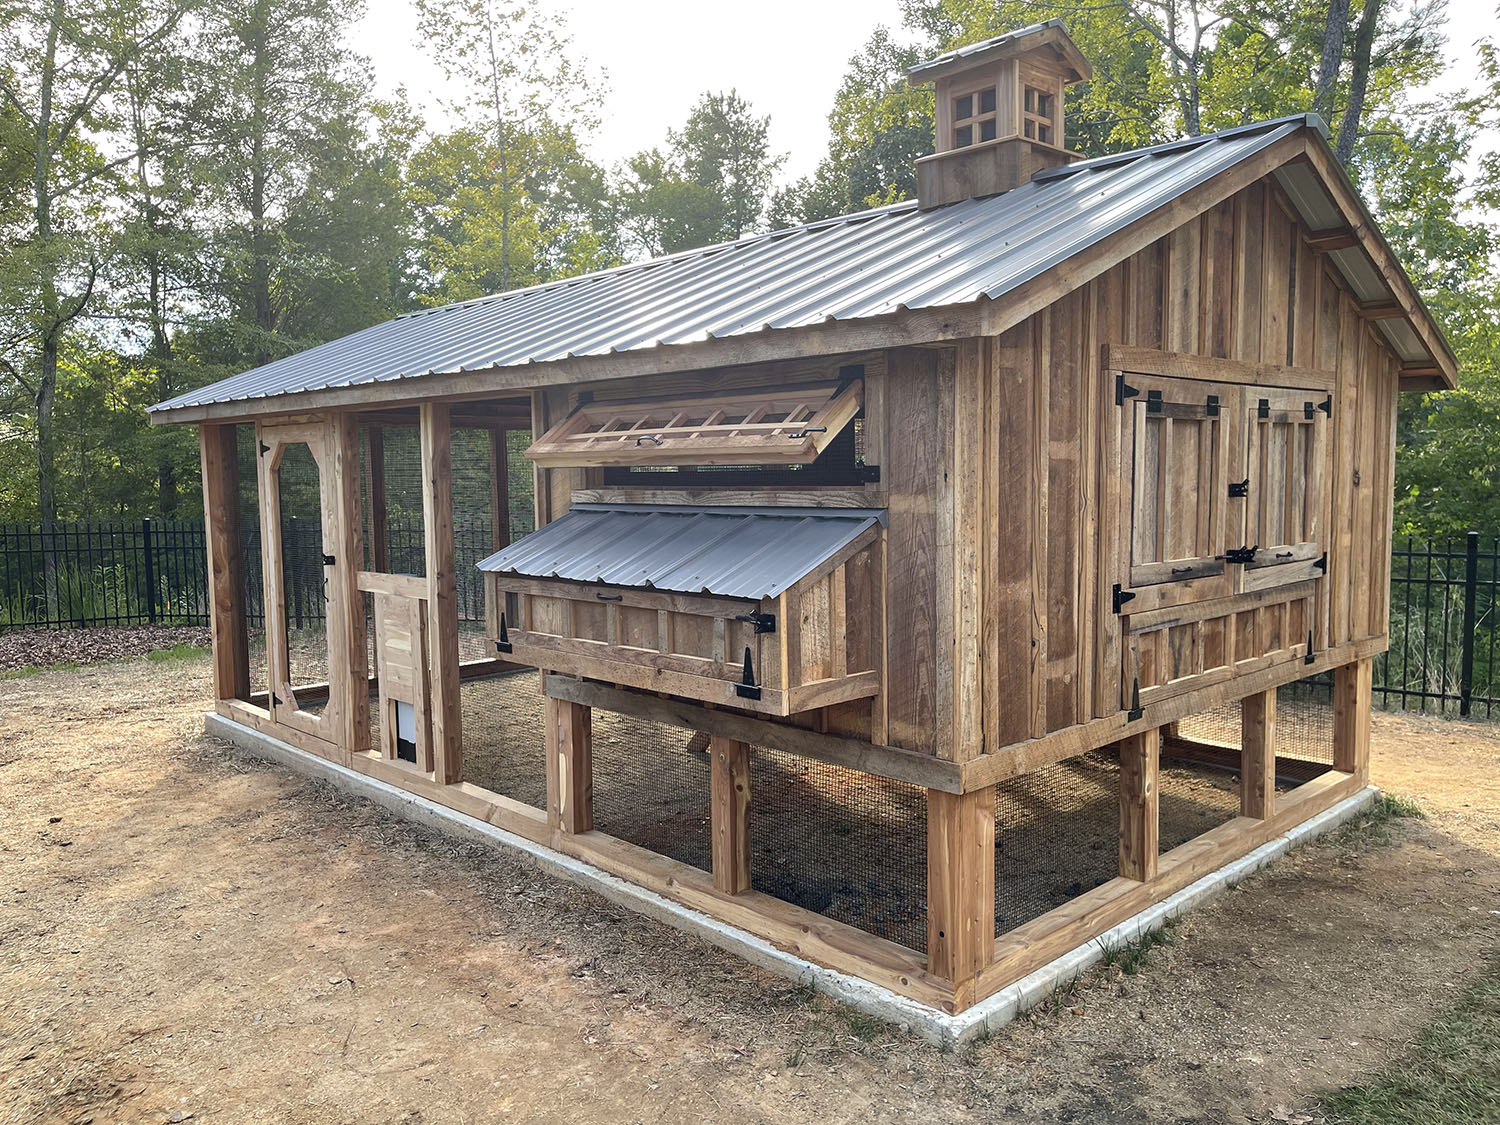 10'x18′ red cedar Carolina Coop in High Point, NC with reclaimed barn wood and chickenguard automatic chicken run door